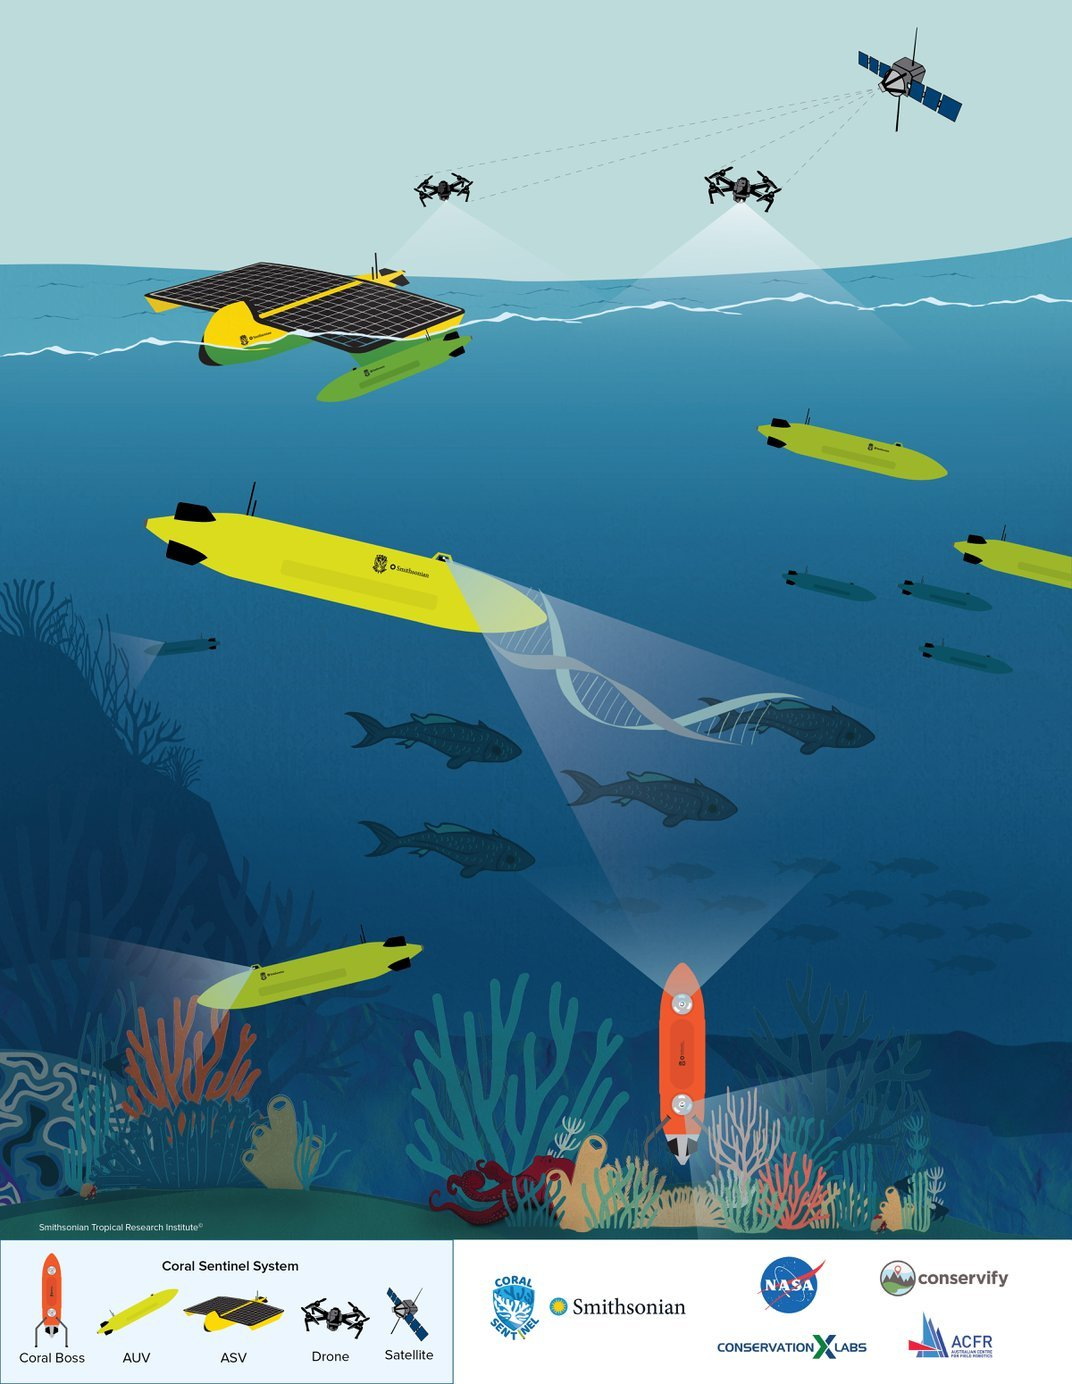 Illustration of underwater robots and drones surveying coral